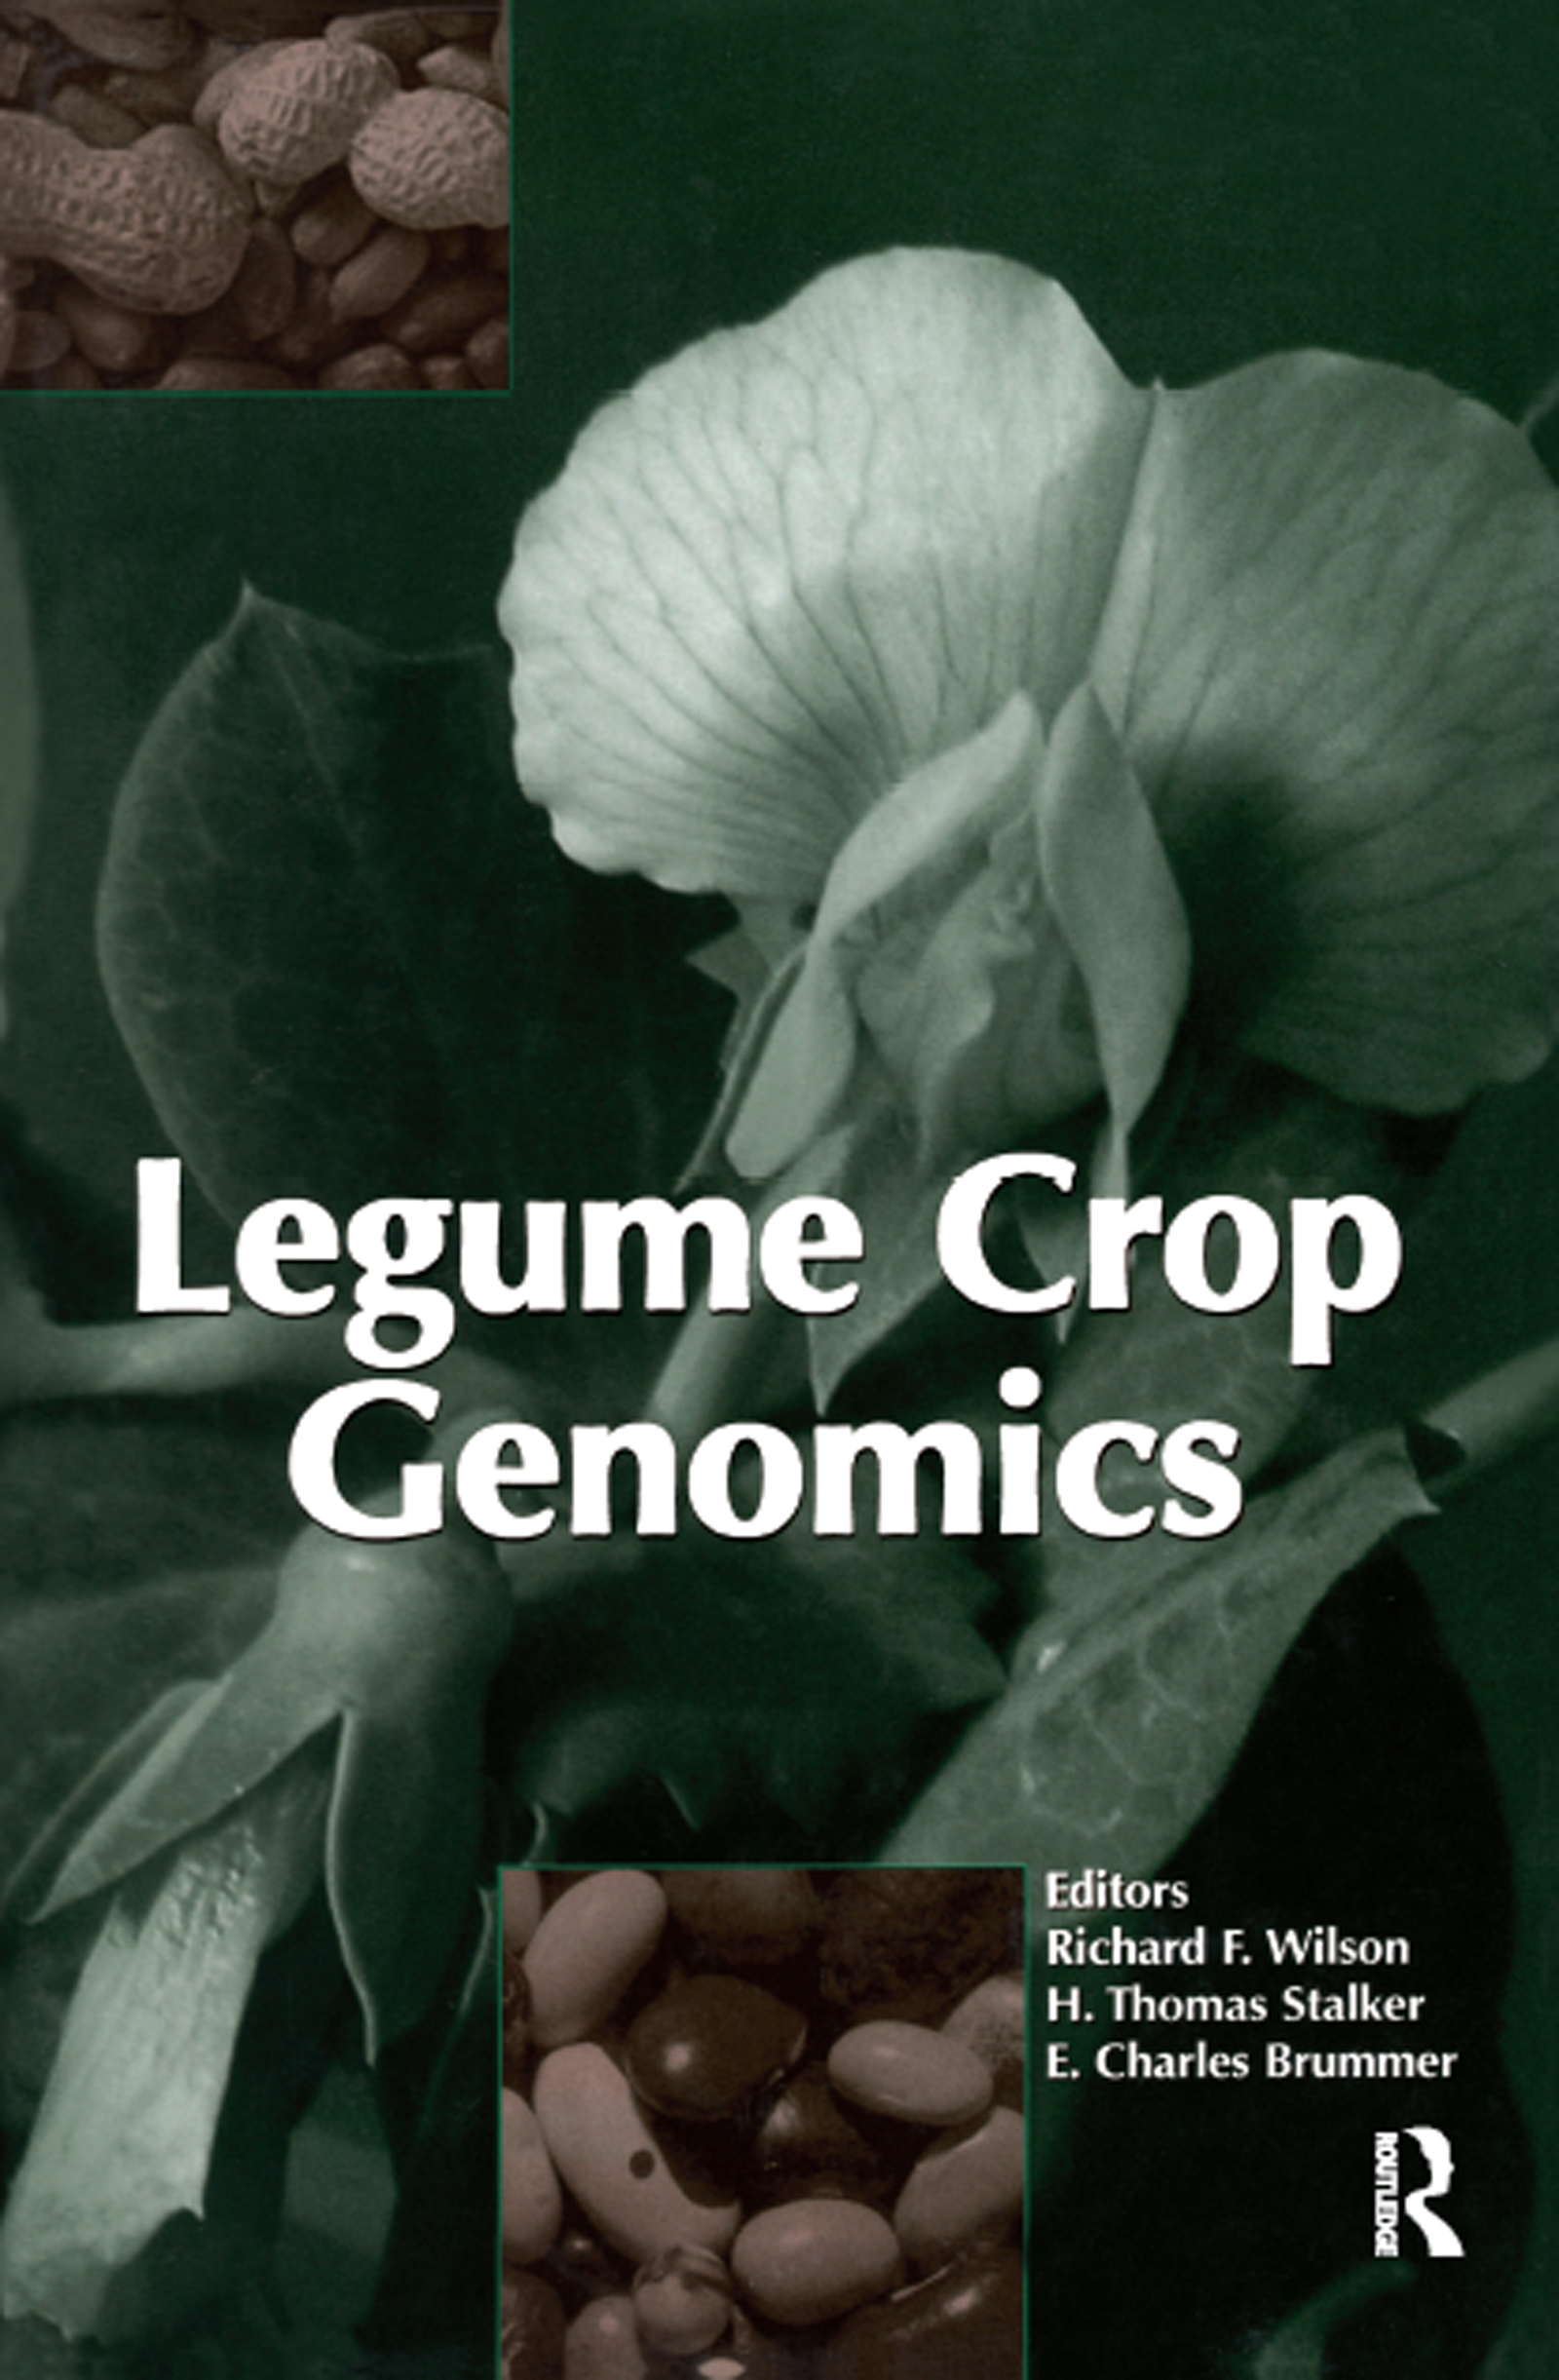 Legume Crop Genomics book cover